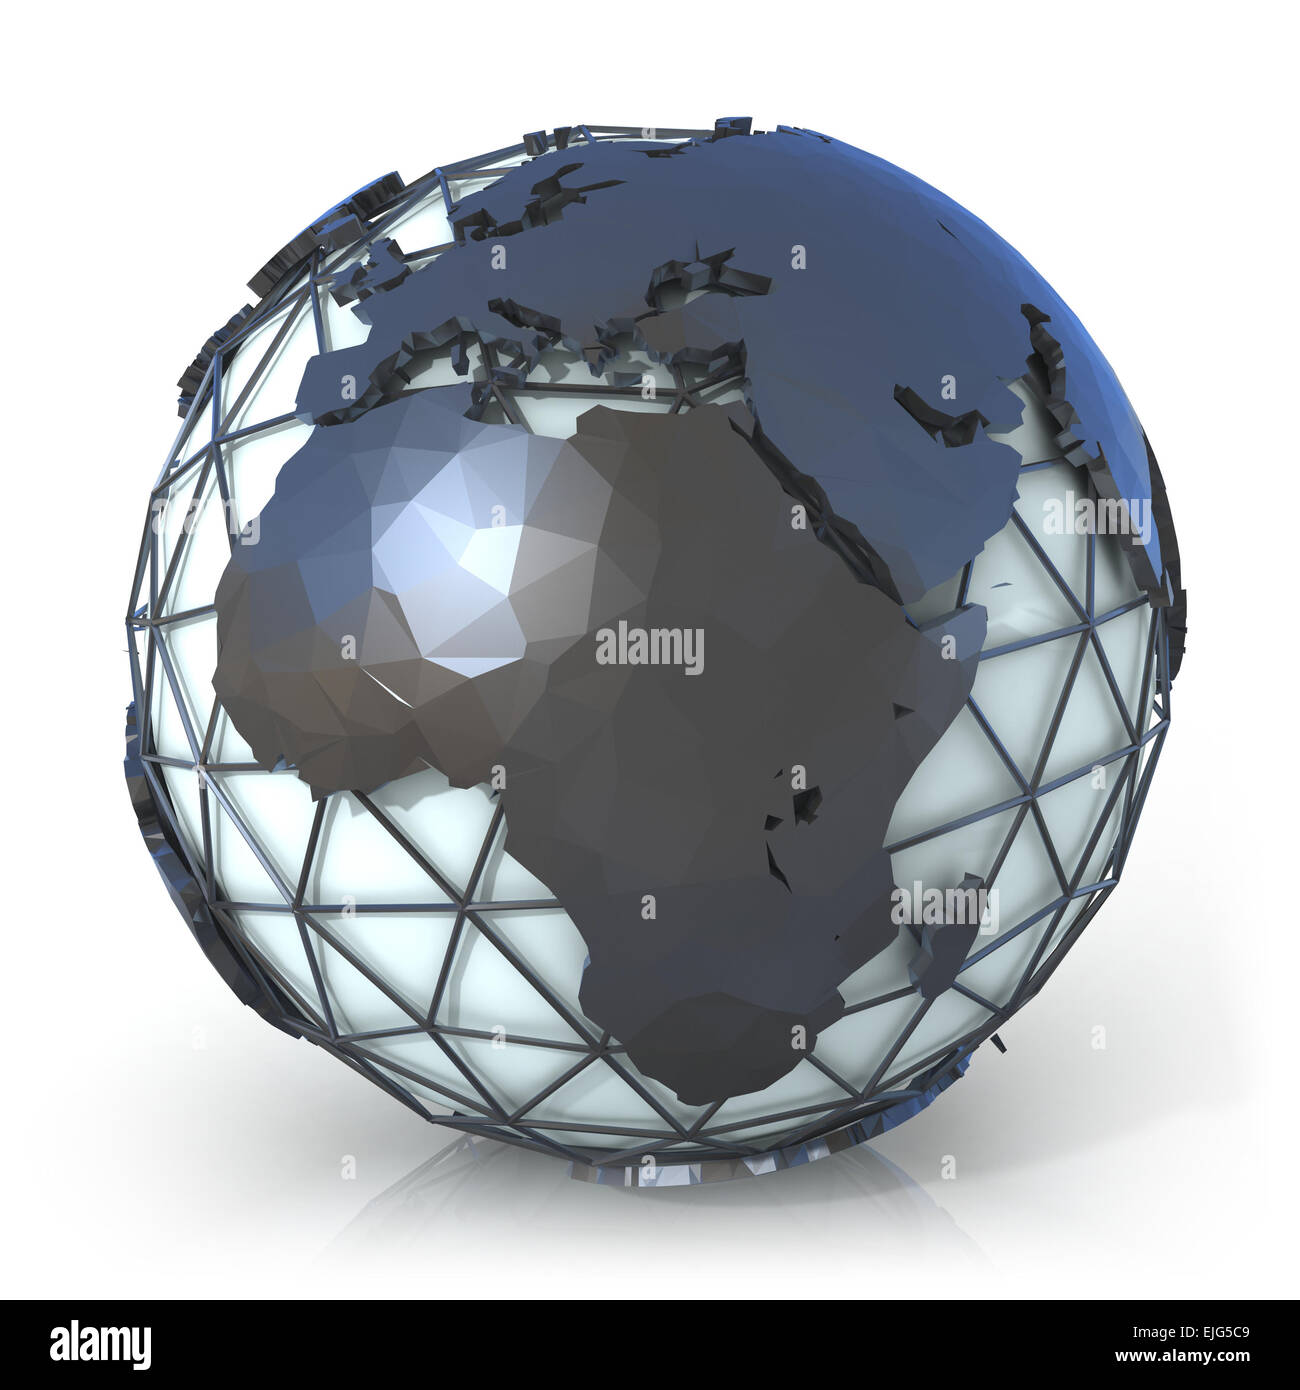 Polygonal style illustration of earth globe, Europe and Africa view - Stock Image